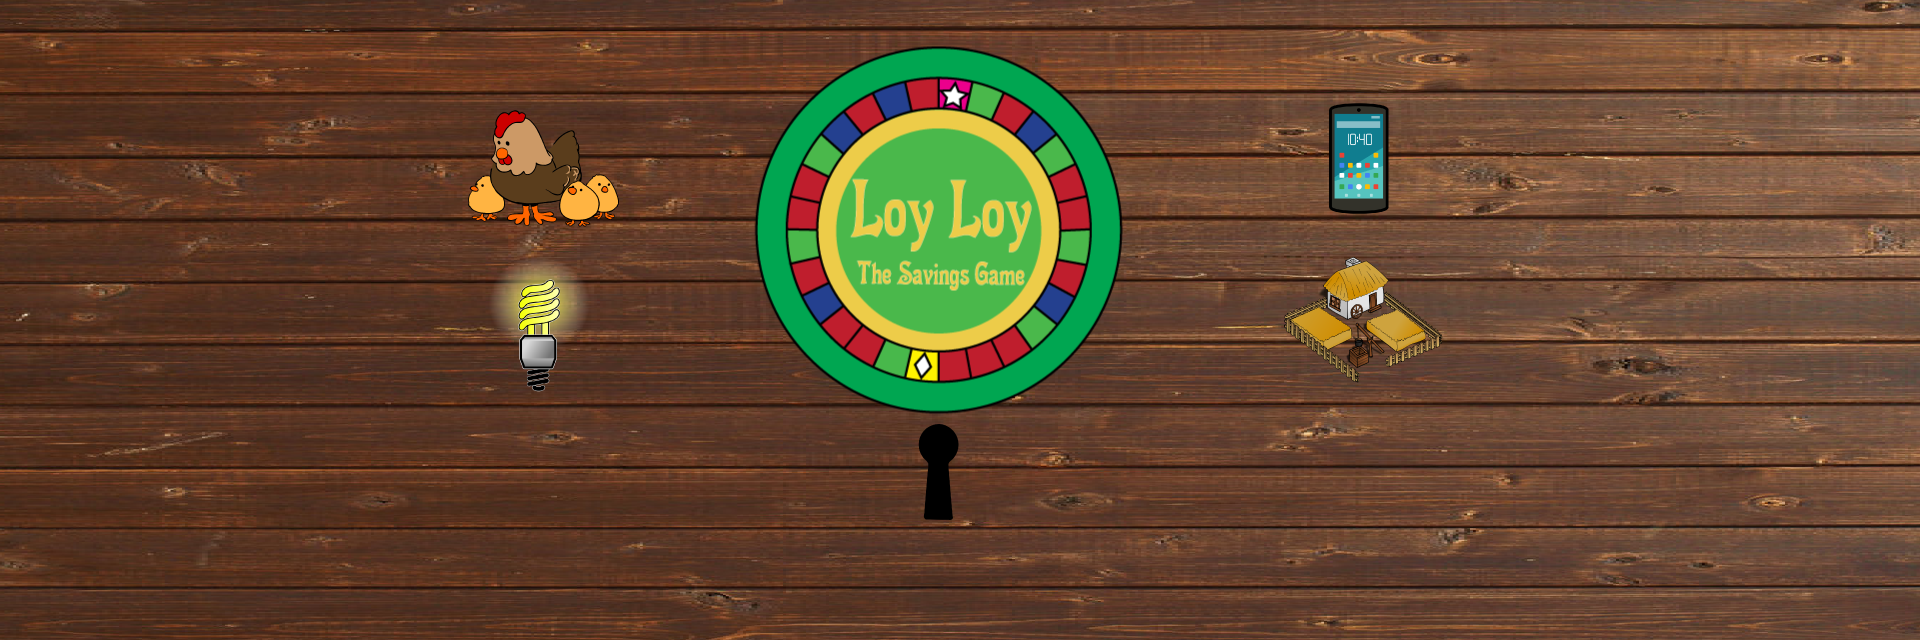 Welcome to Loy Loy!